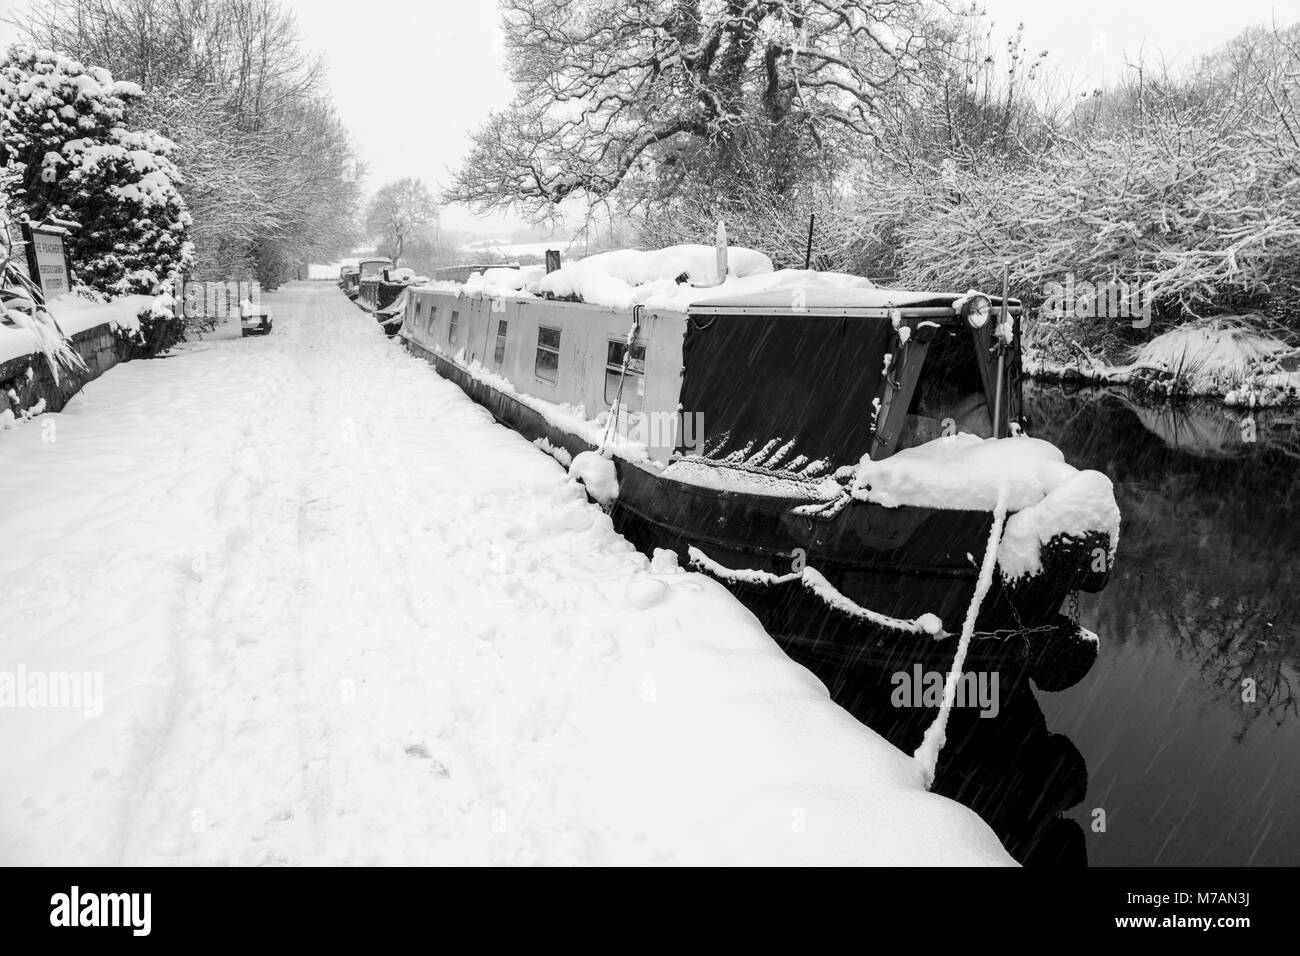 Narrowboats covered in snow are seen moored up on the Llangollen Canal - Stock Image